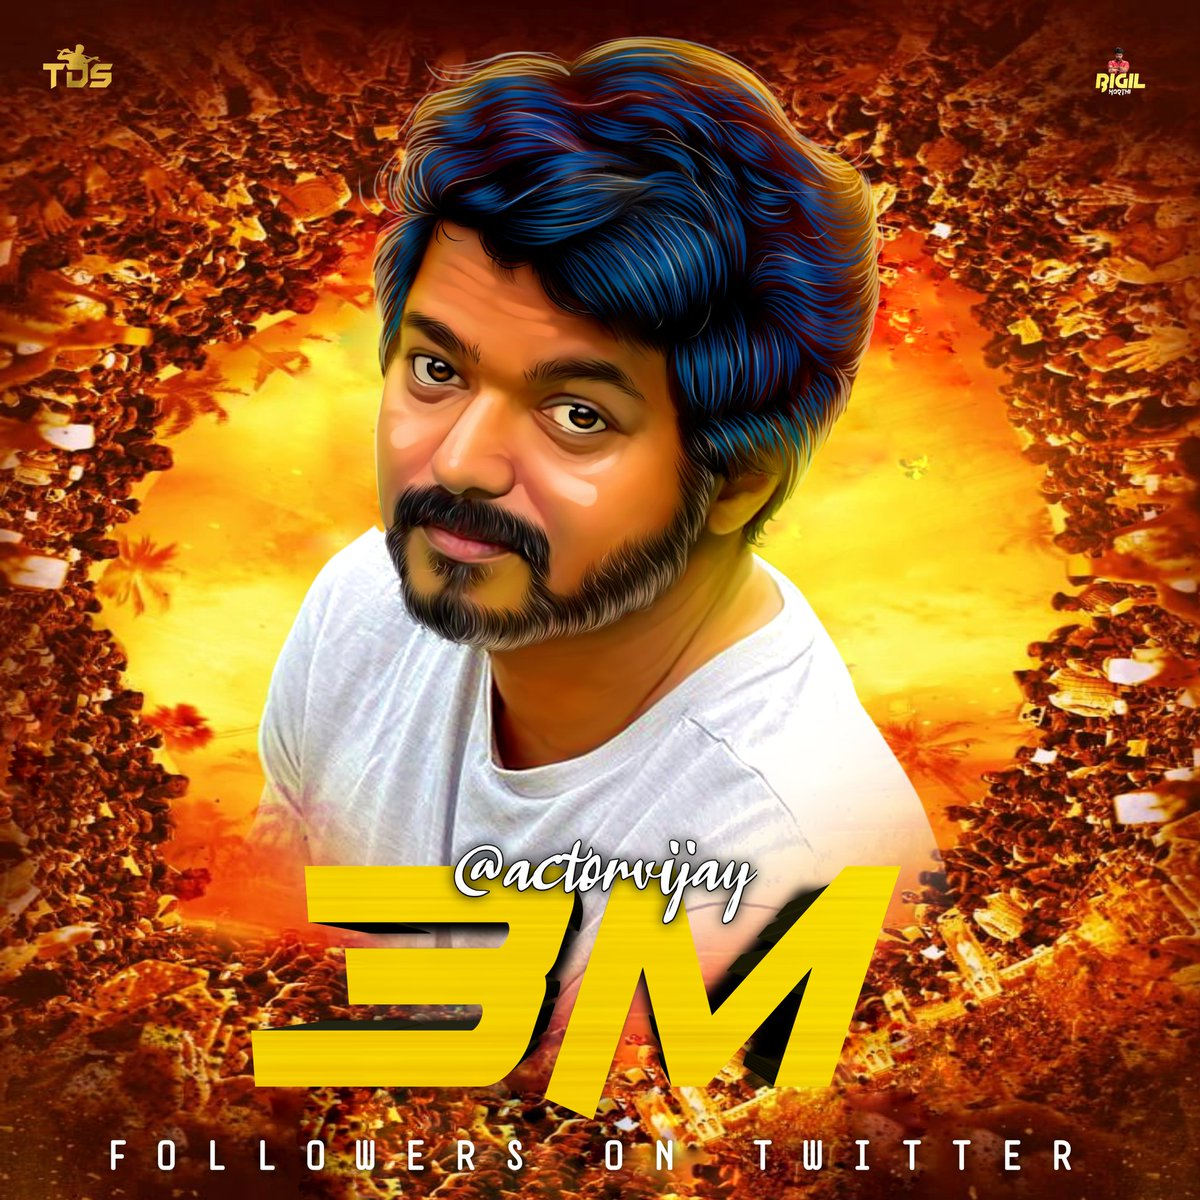 3M+ followers on Twitter 💥🤩 @actorvijay 😎💪  Designed By @Itz_KarthiVfc6  #MasterFilm #Master  #TeamThalapathyBloods  #3MFollowersforThalapathyVIJAY